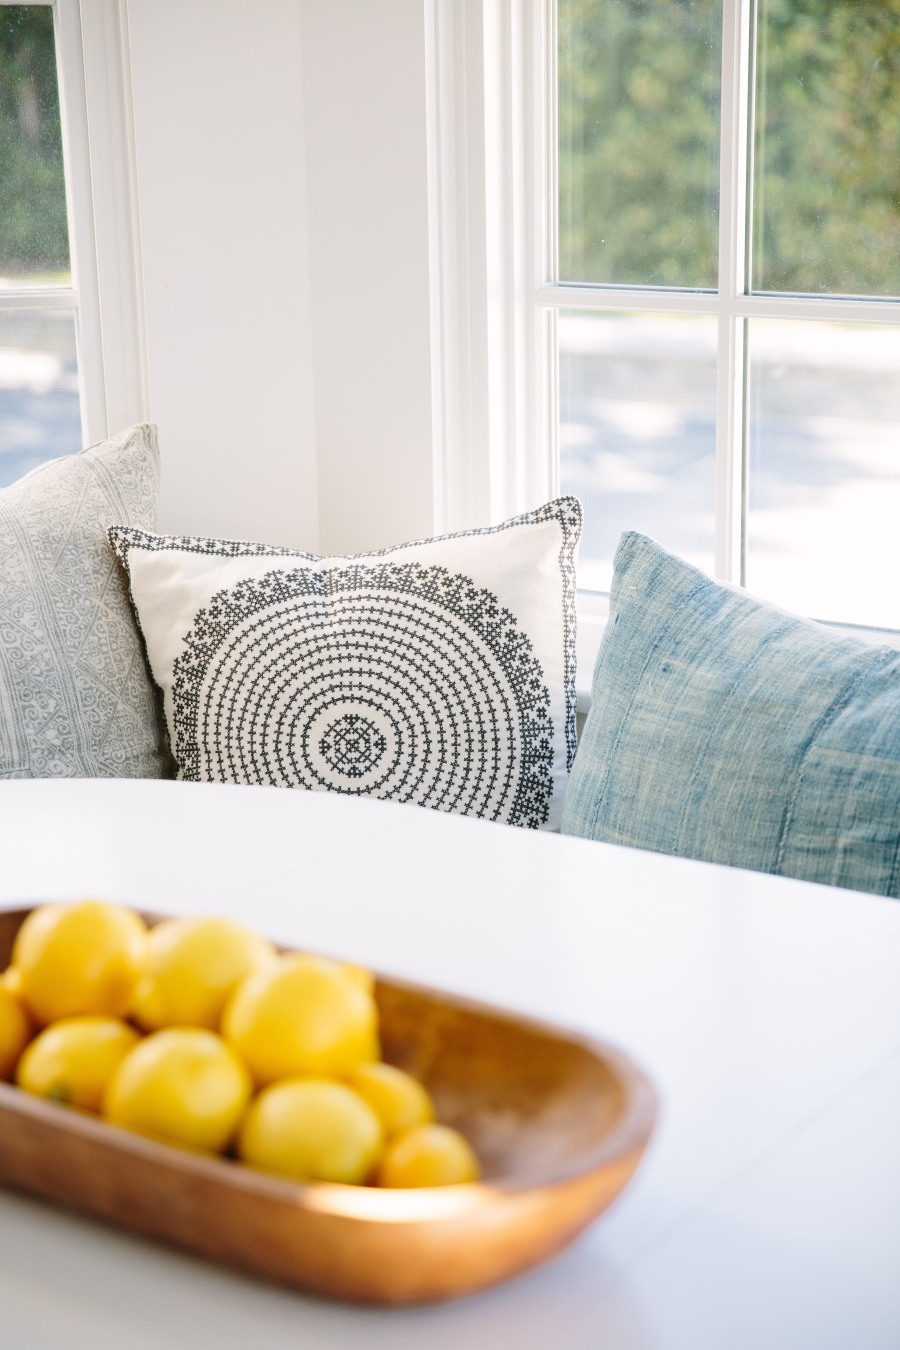 Blue and white vintage cushions